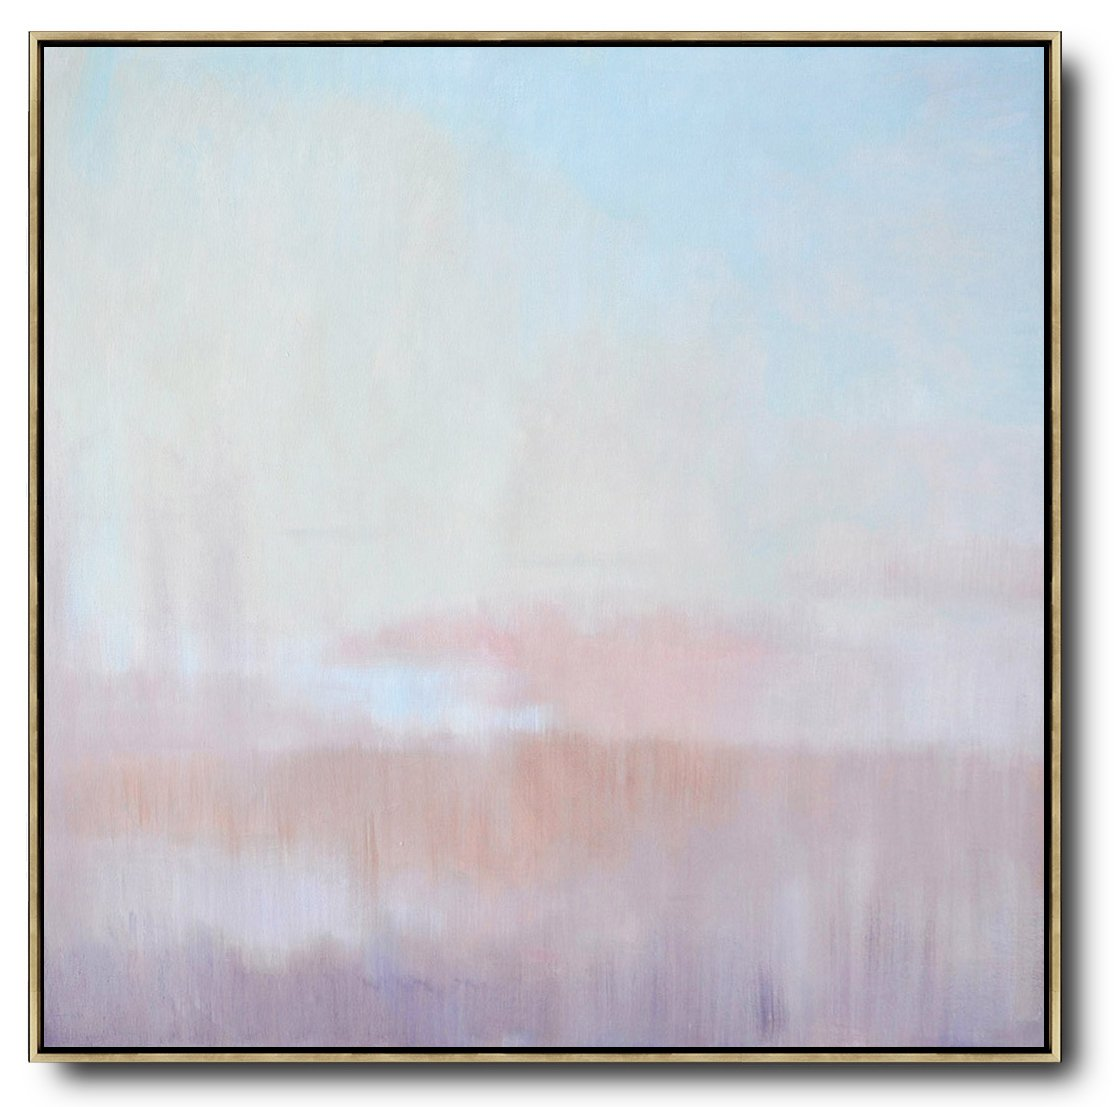 Handmade Large Painting,Abstract Landscape Oil Painting,Large Wall Art Home Decor,Sky Blue,Pink,Light Yellow.etc